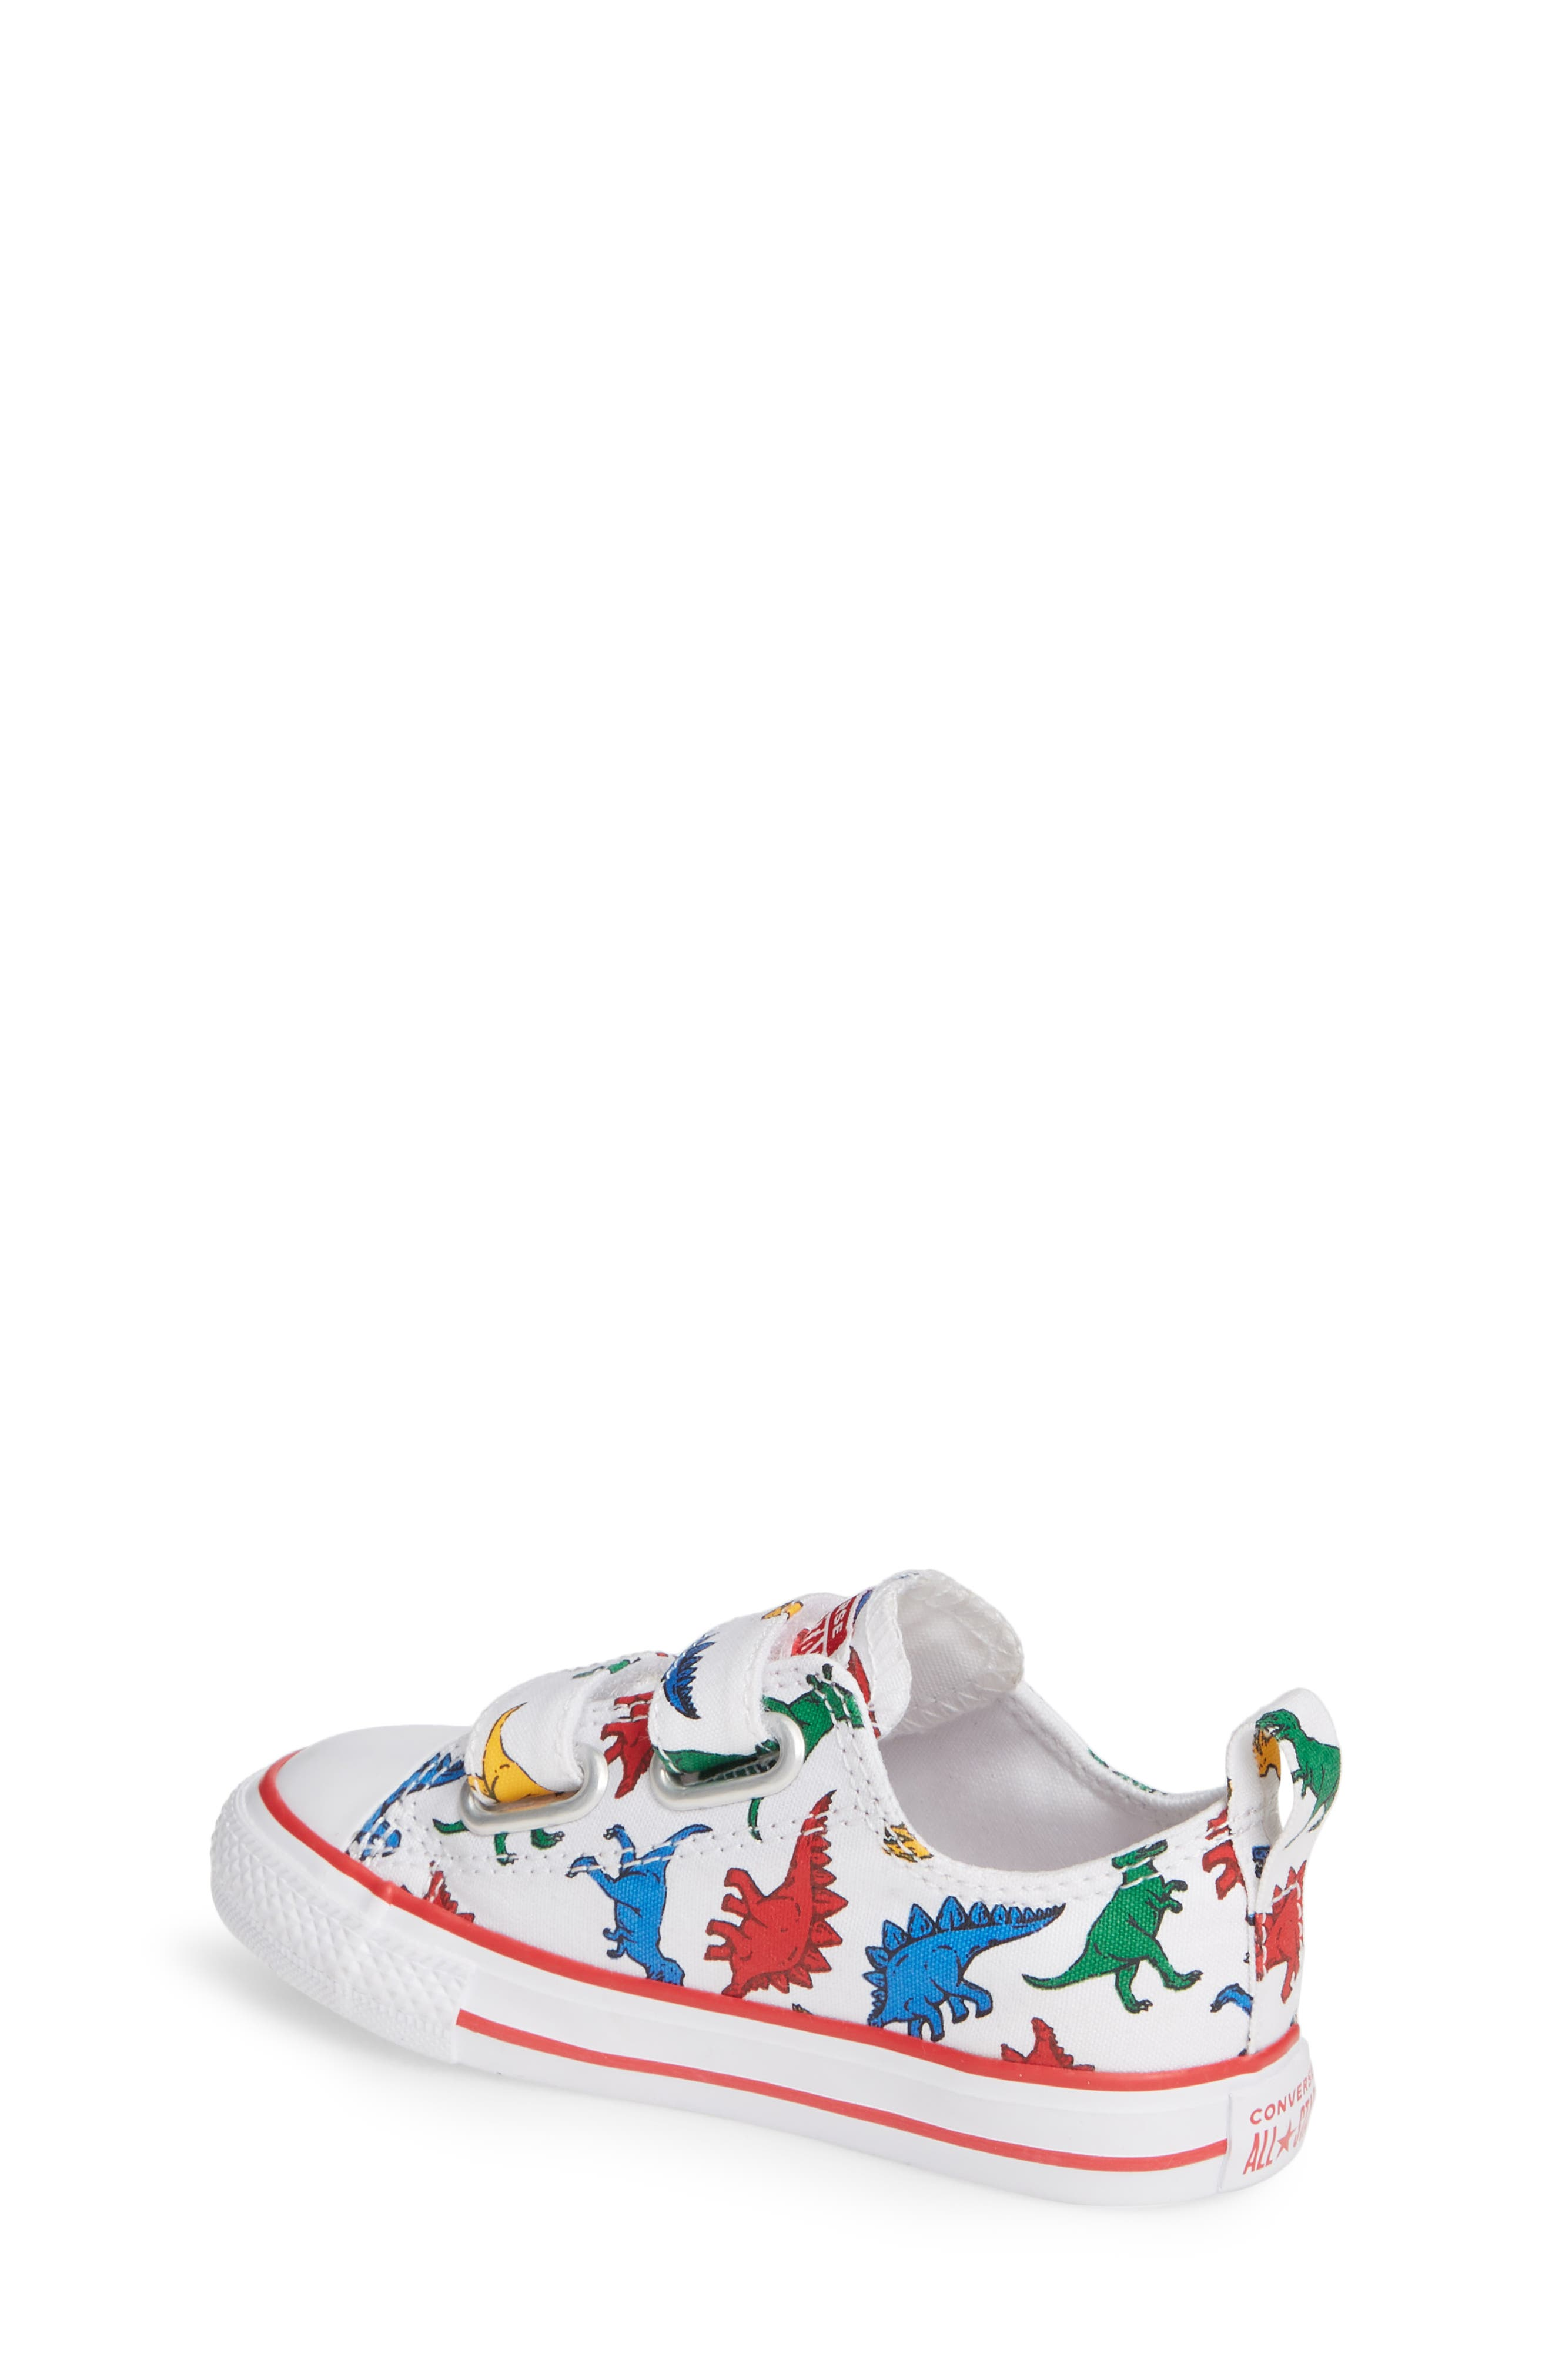 Chuck Taylor<sup>®</sup> All Star<sup>®</sup> Ox Sneaker,                             Alternate thumbnail 2, color,                             WHITE/ ENAMEL RED/ BLUE DINO